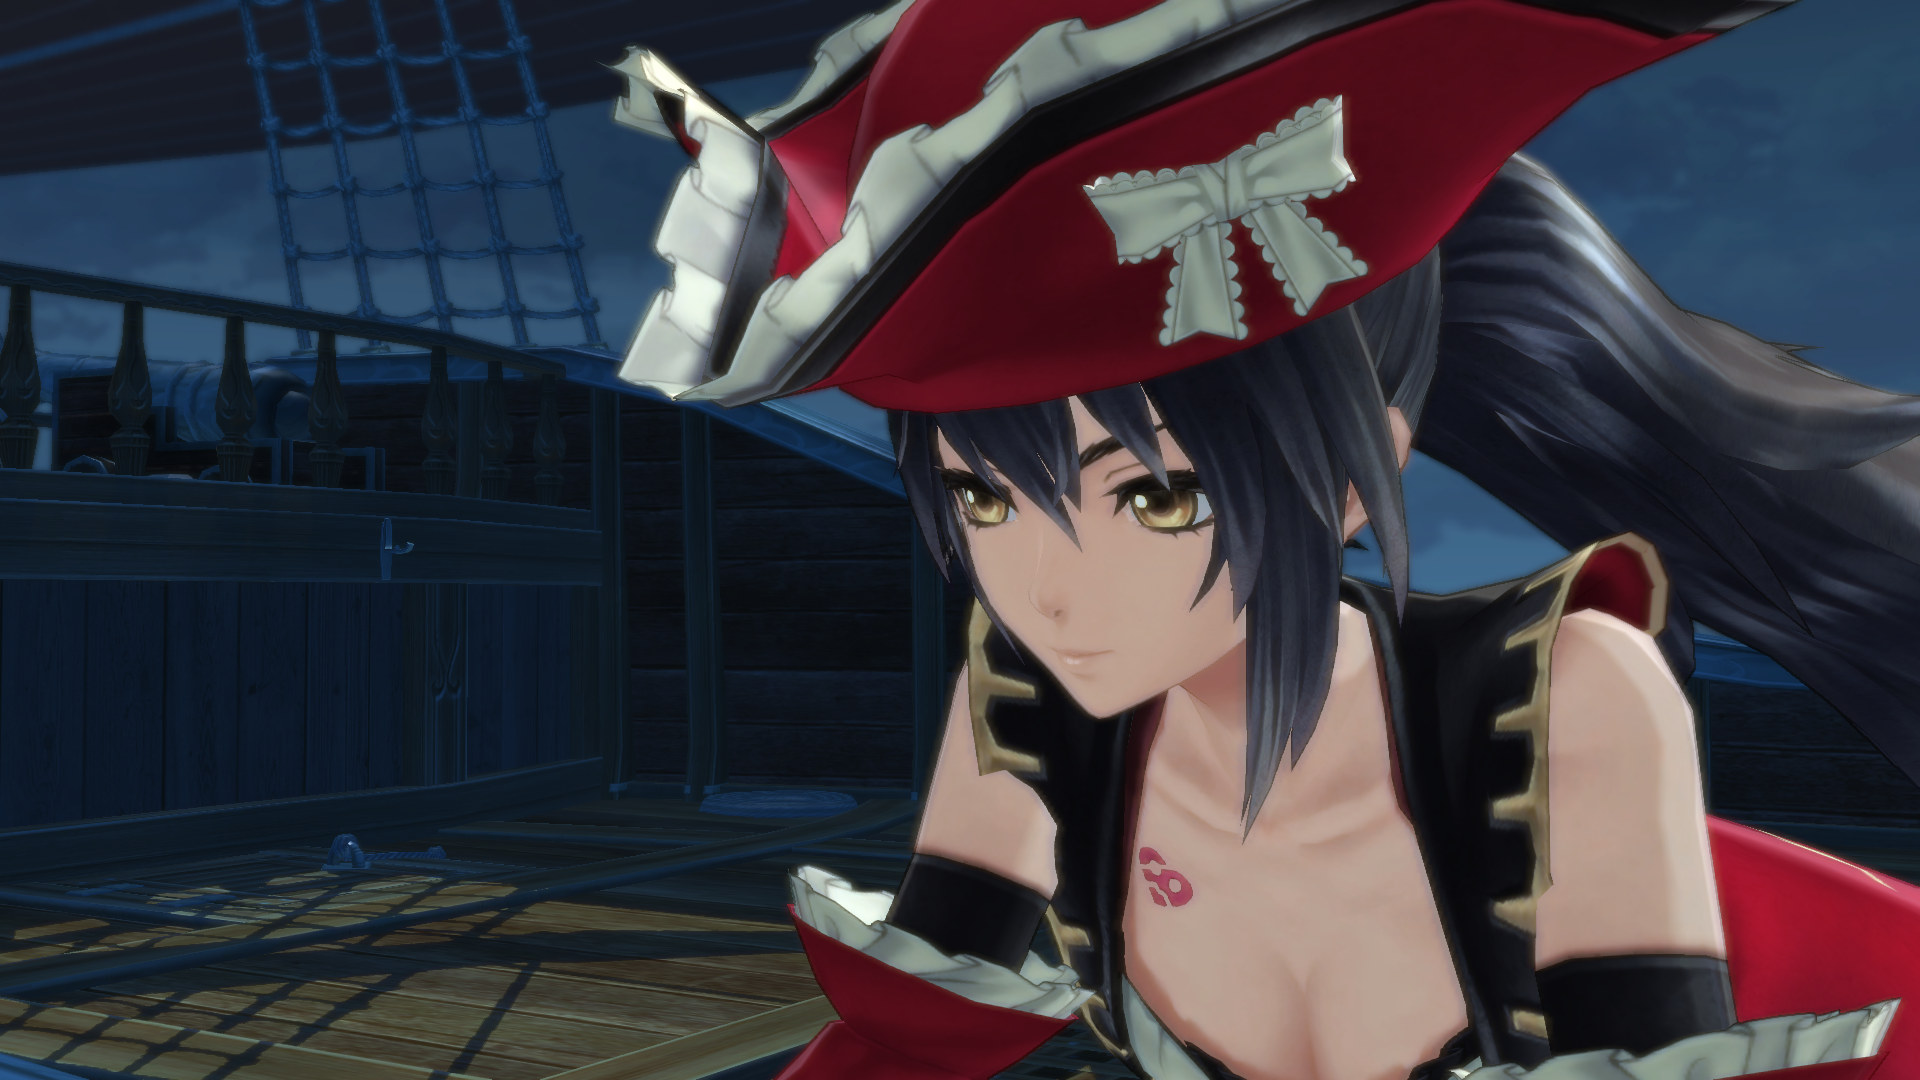 Berseria Piraten Outfits